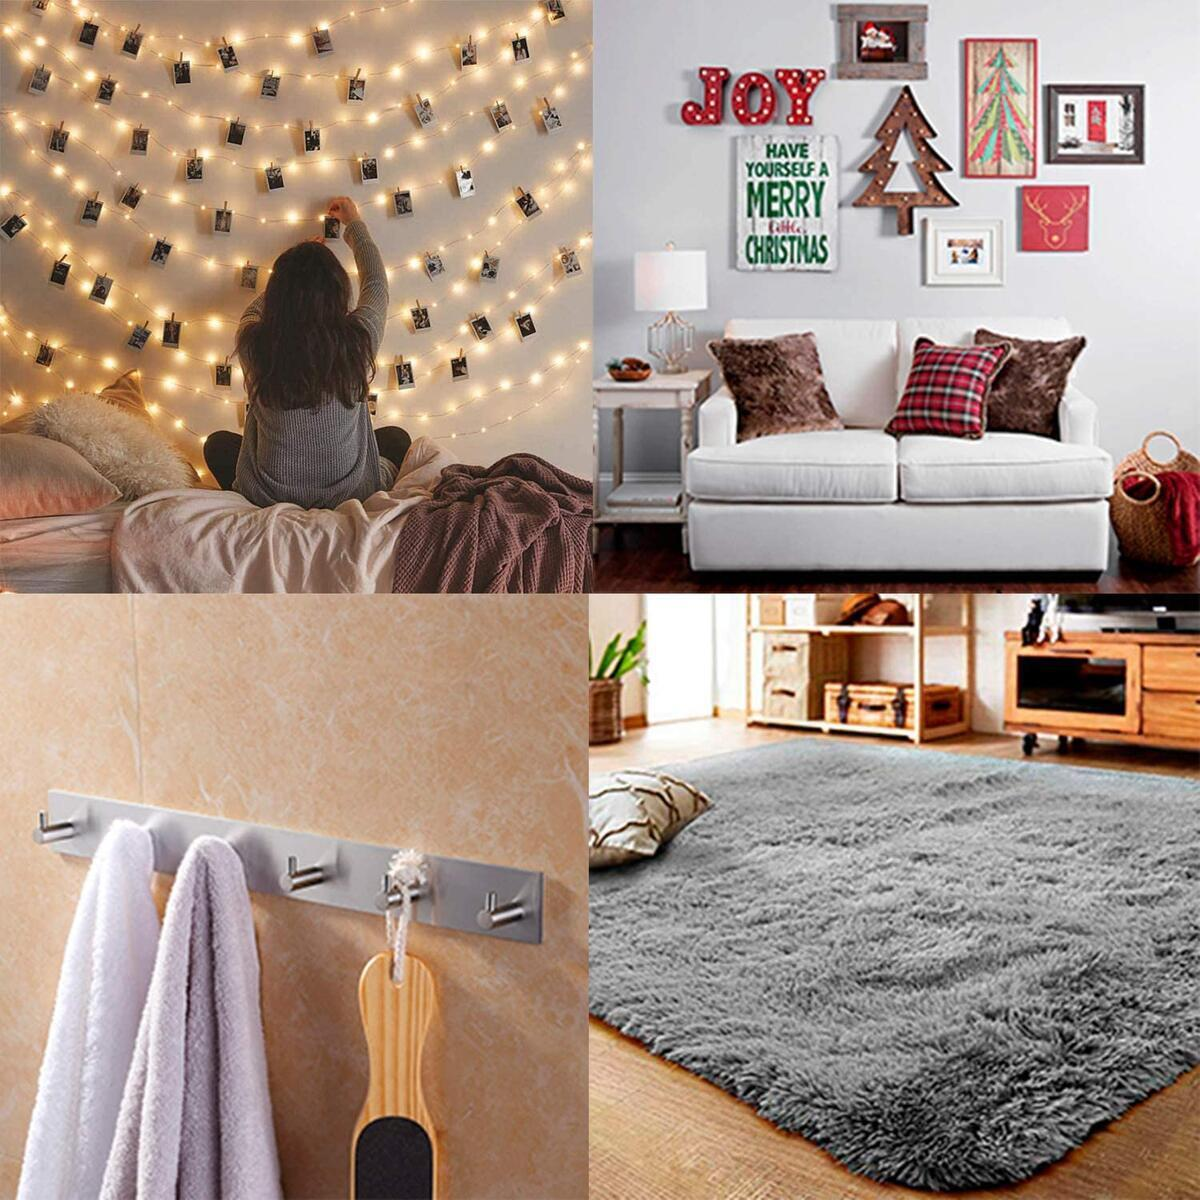 Caberi 16.4ft/2pcs,Double Sided Traceless Washable Nano Tape Reusable Clear Double Sided Anti-Slip Nano Gel Pads,Removable Sticky Stips Grip for Wall, fix Carpet mats etc.( 2mm)